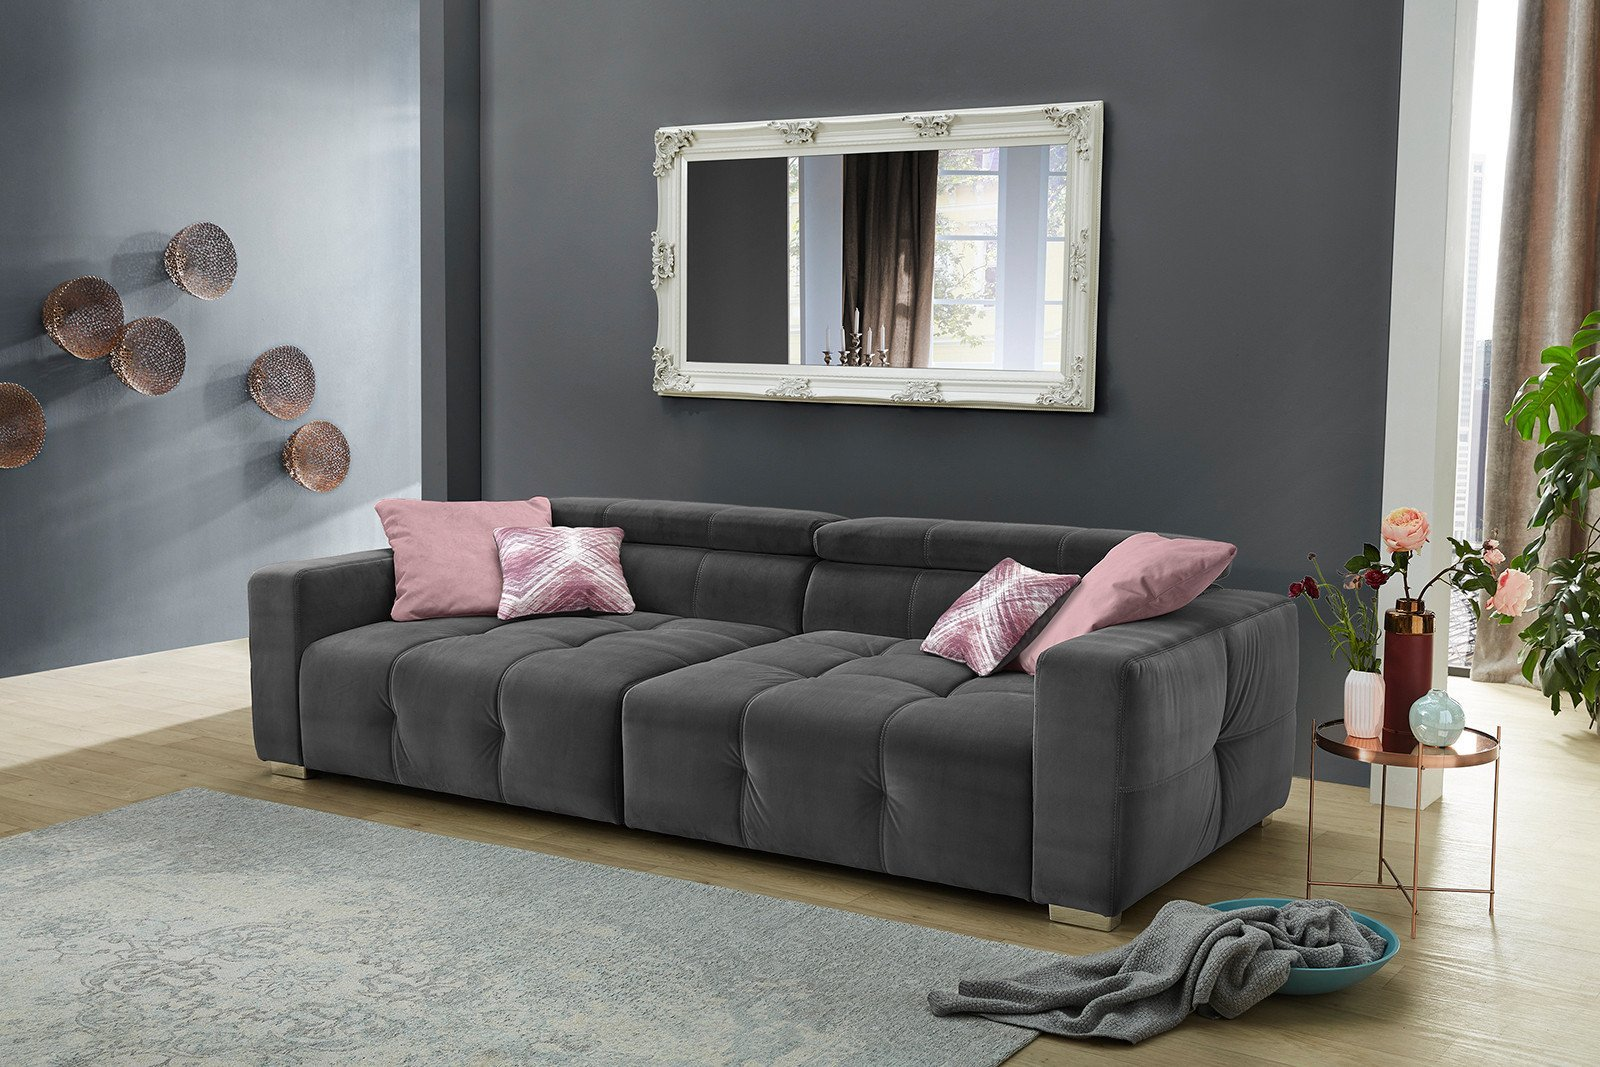 jockenh fer polsterm bel trento xxl sofa in grau m bel letz ihr online shop. Black Bedroom Furniture Sets. Home Design Ideas